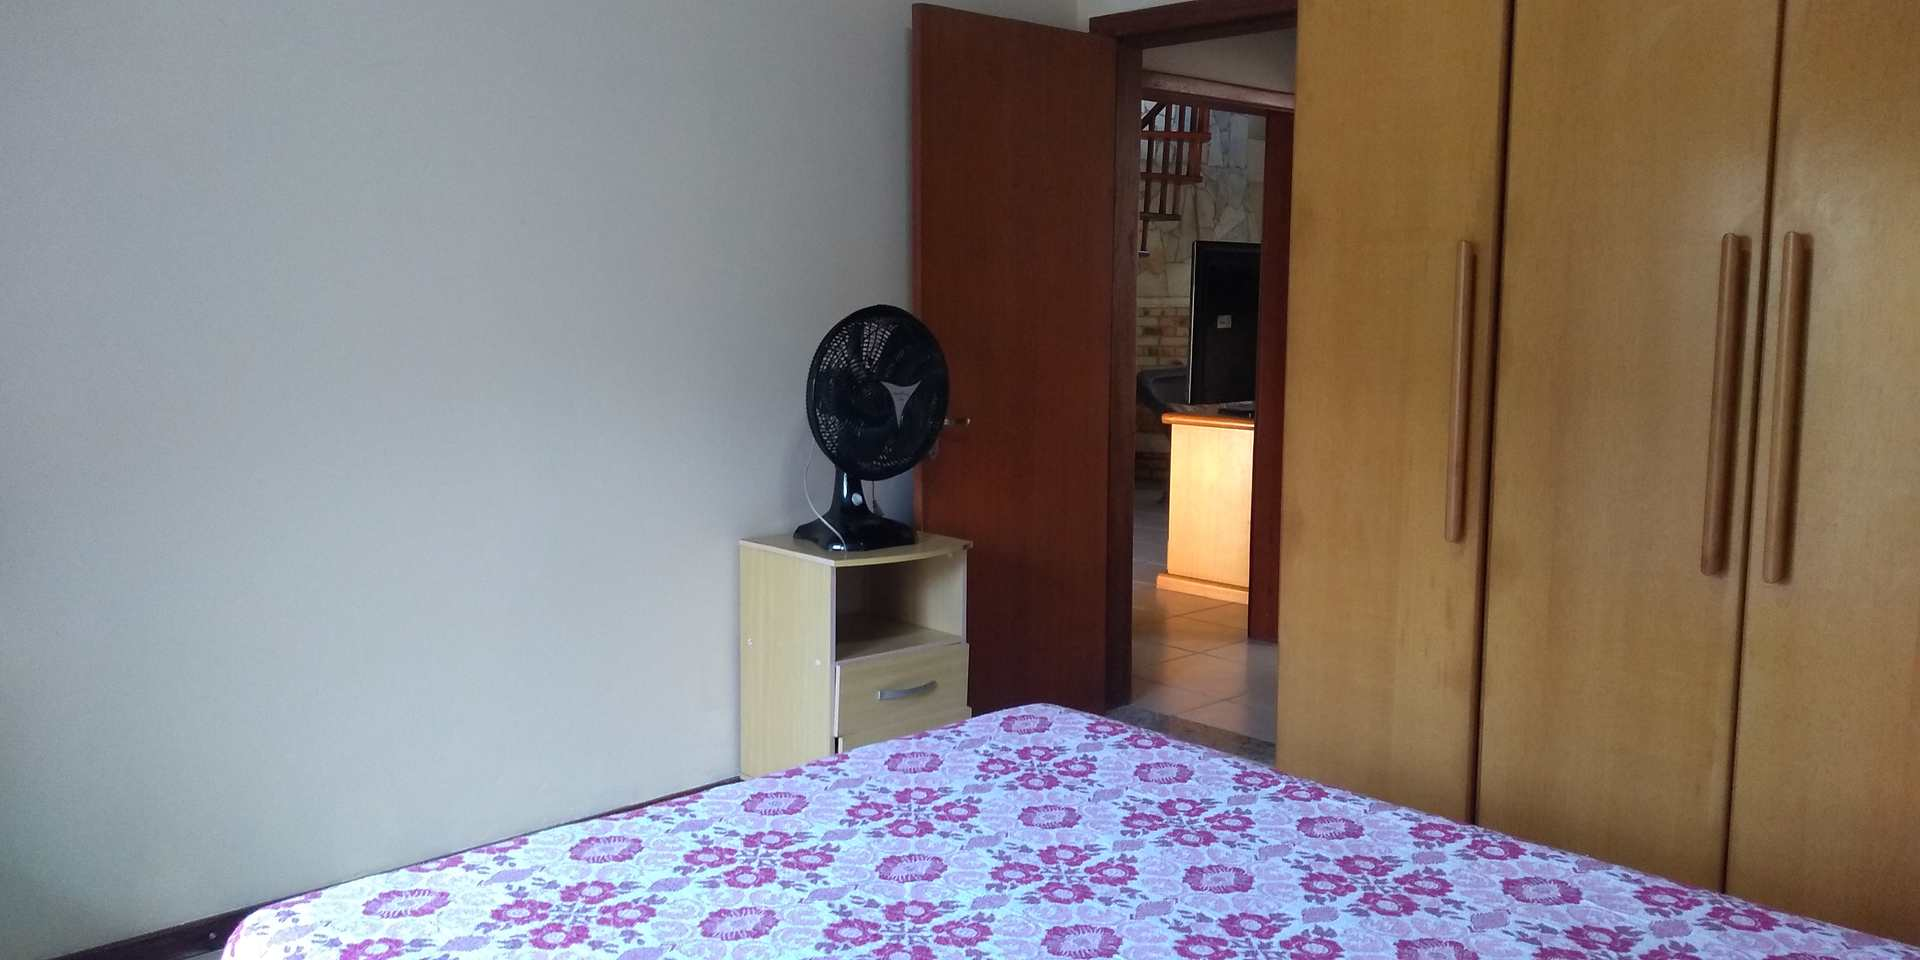 Casa com 3 dorms, Cassino, Internet e Smart Tv